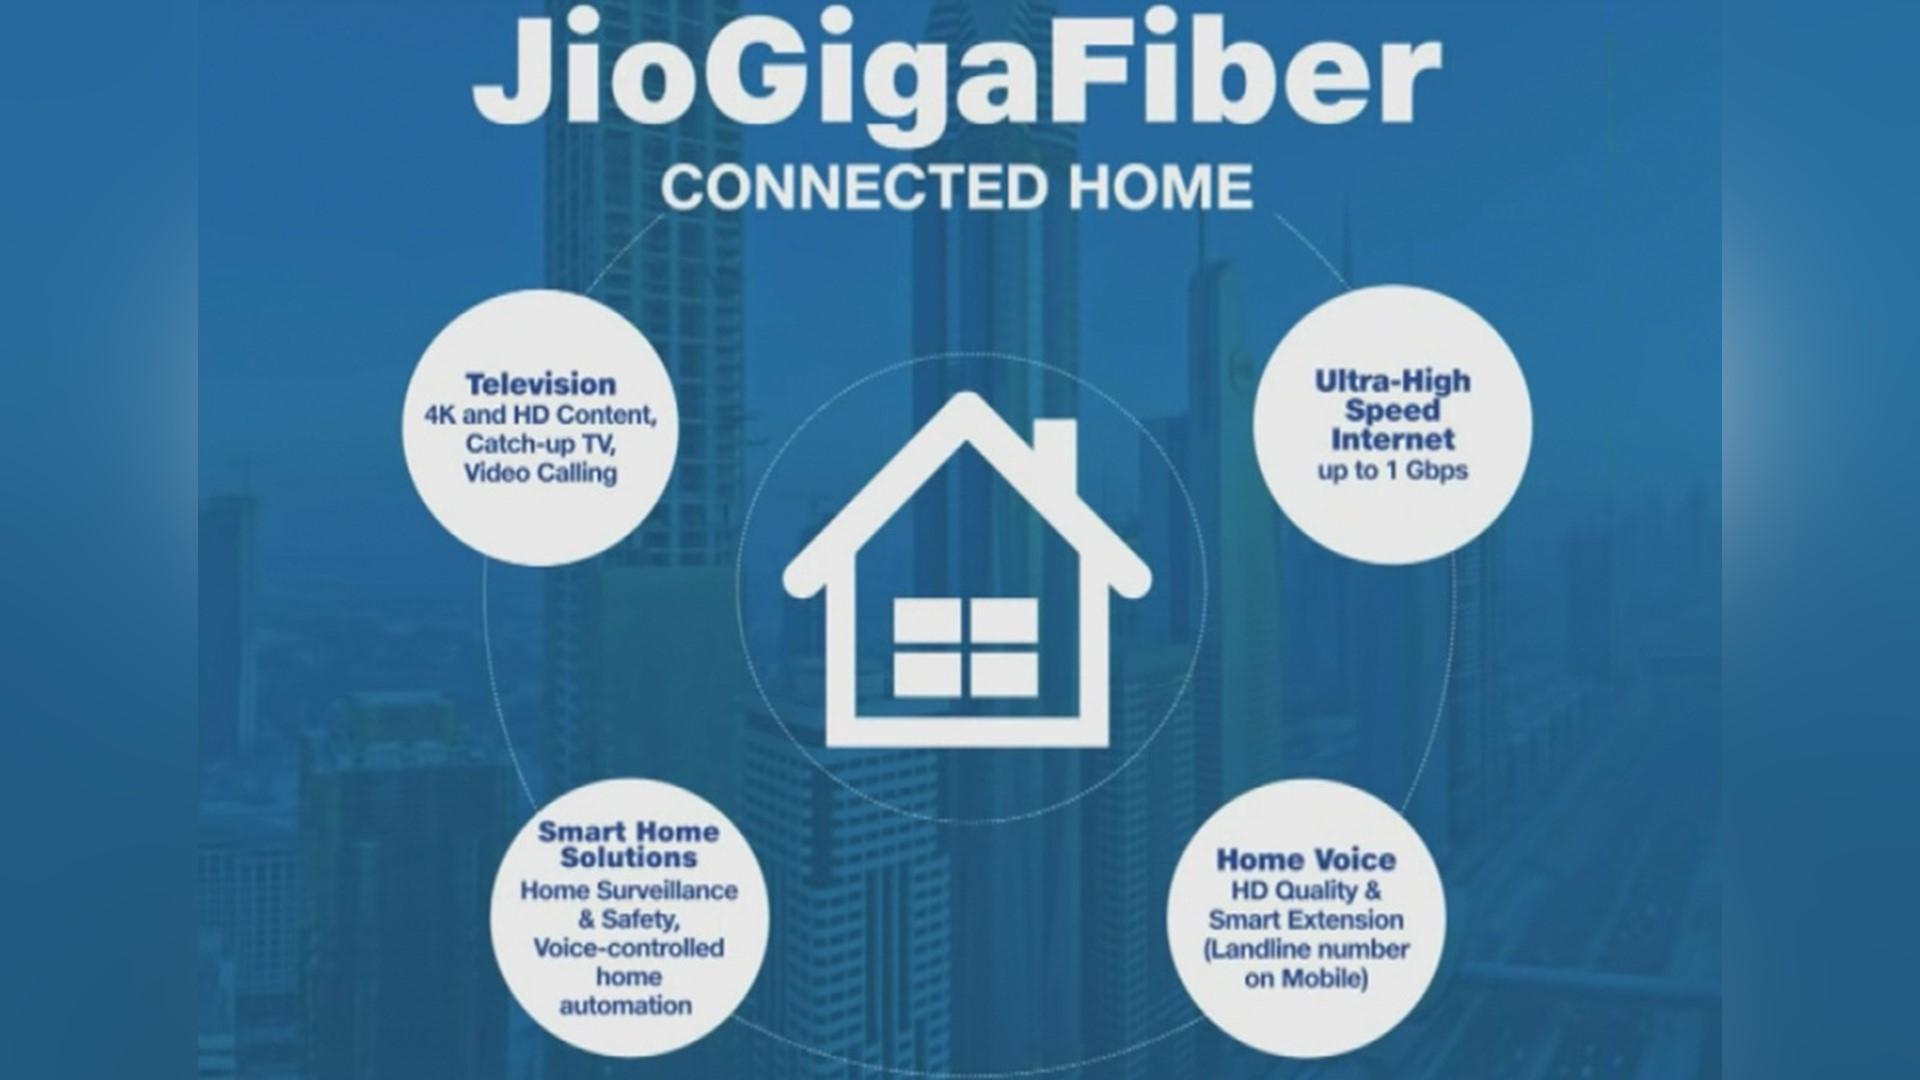 Reliance Jio GigaFiber Triple Play plan: broadband, TV and unlimited